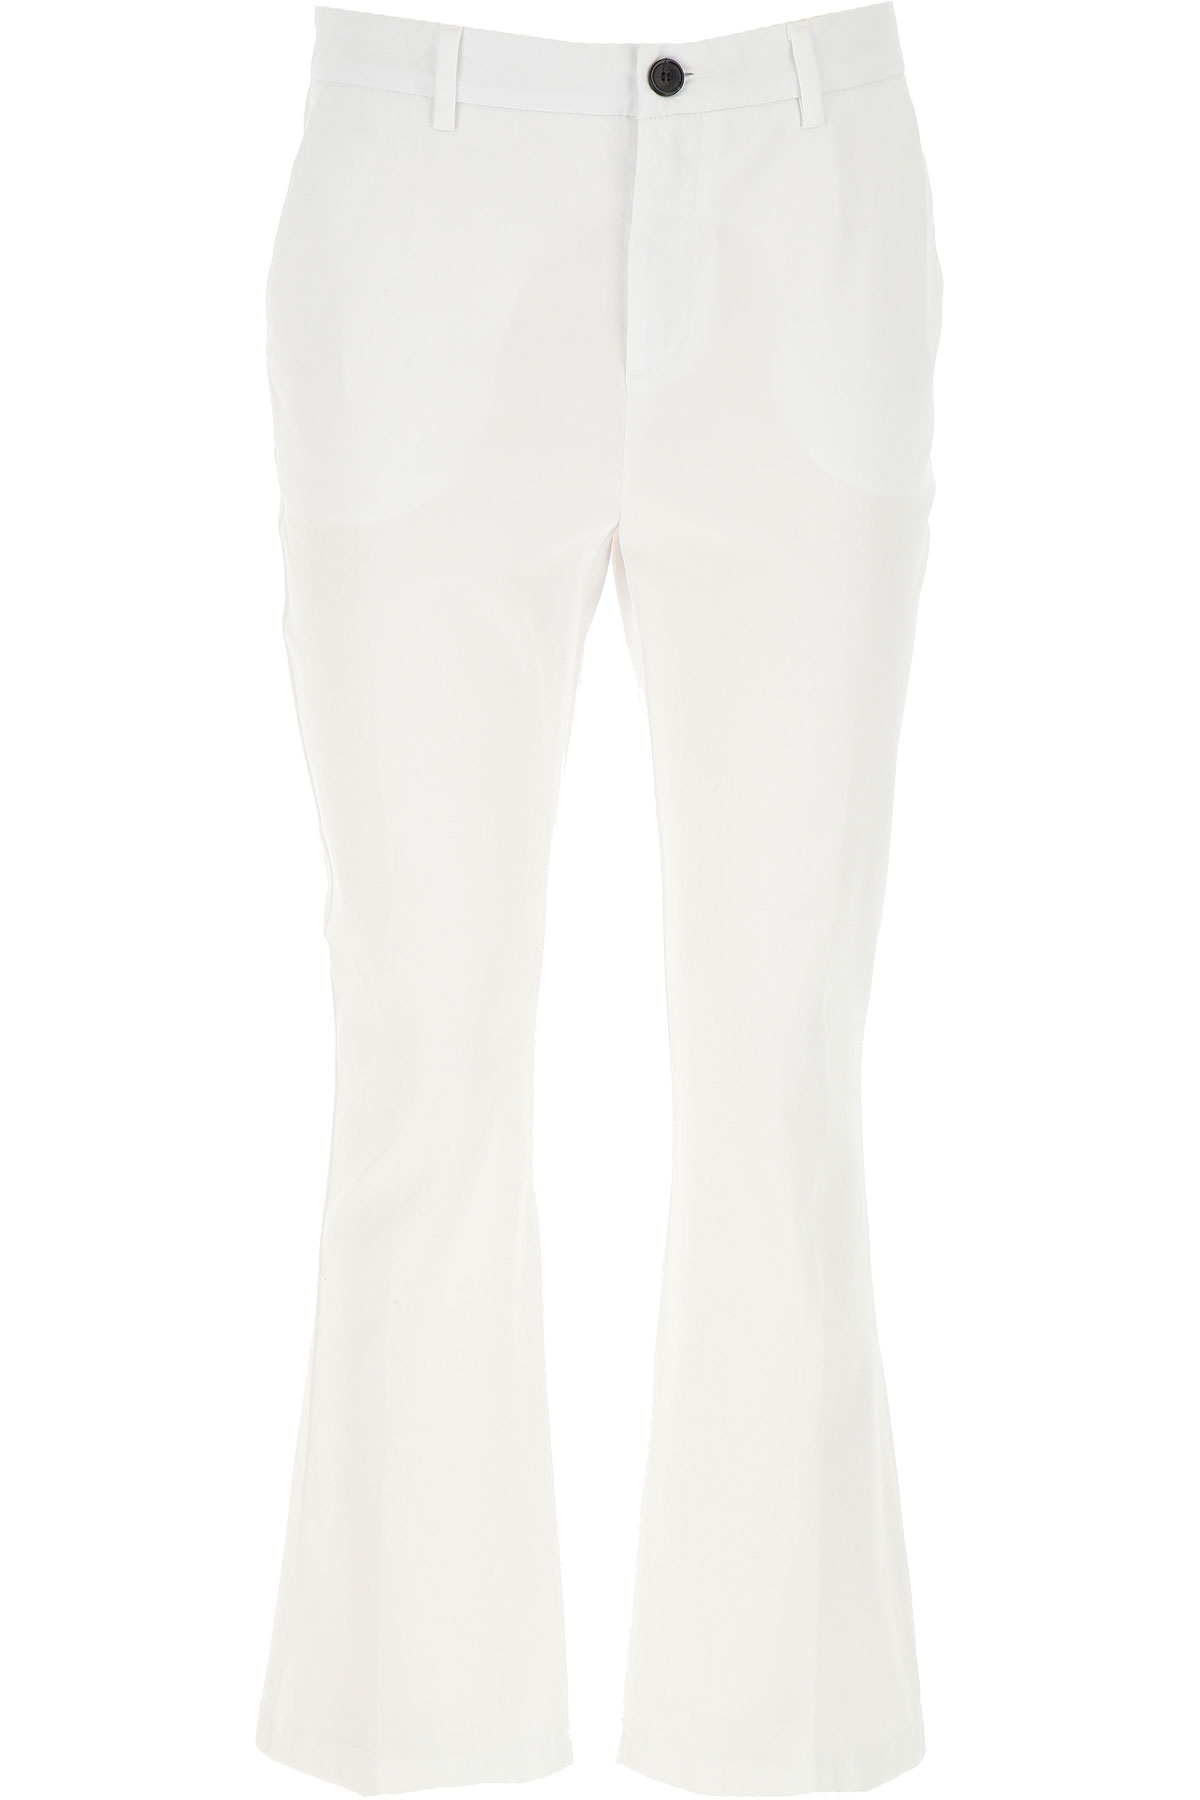 Department Five Pants for Women On Sale, White, Cotton, 2019, 26 27 28 29